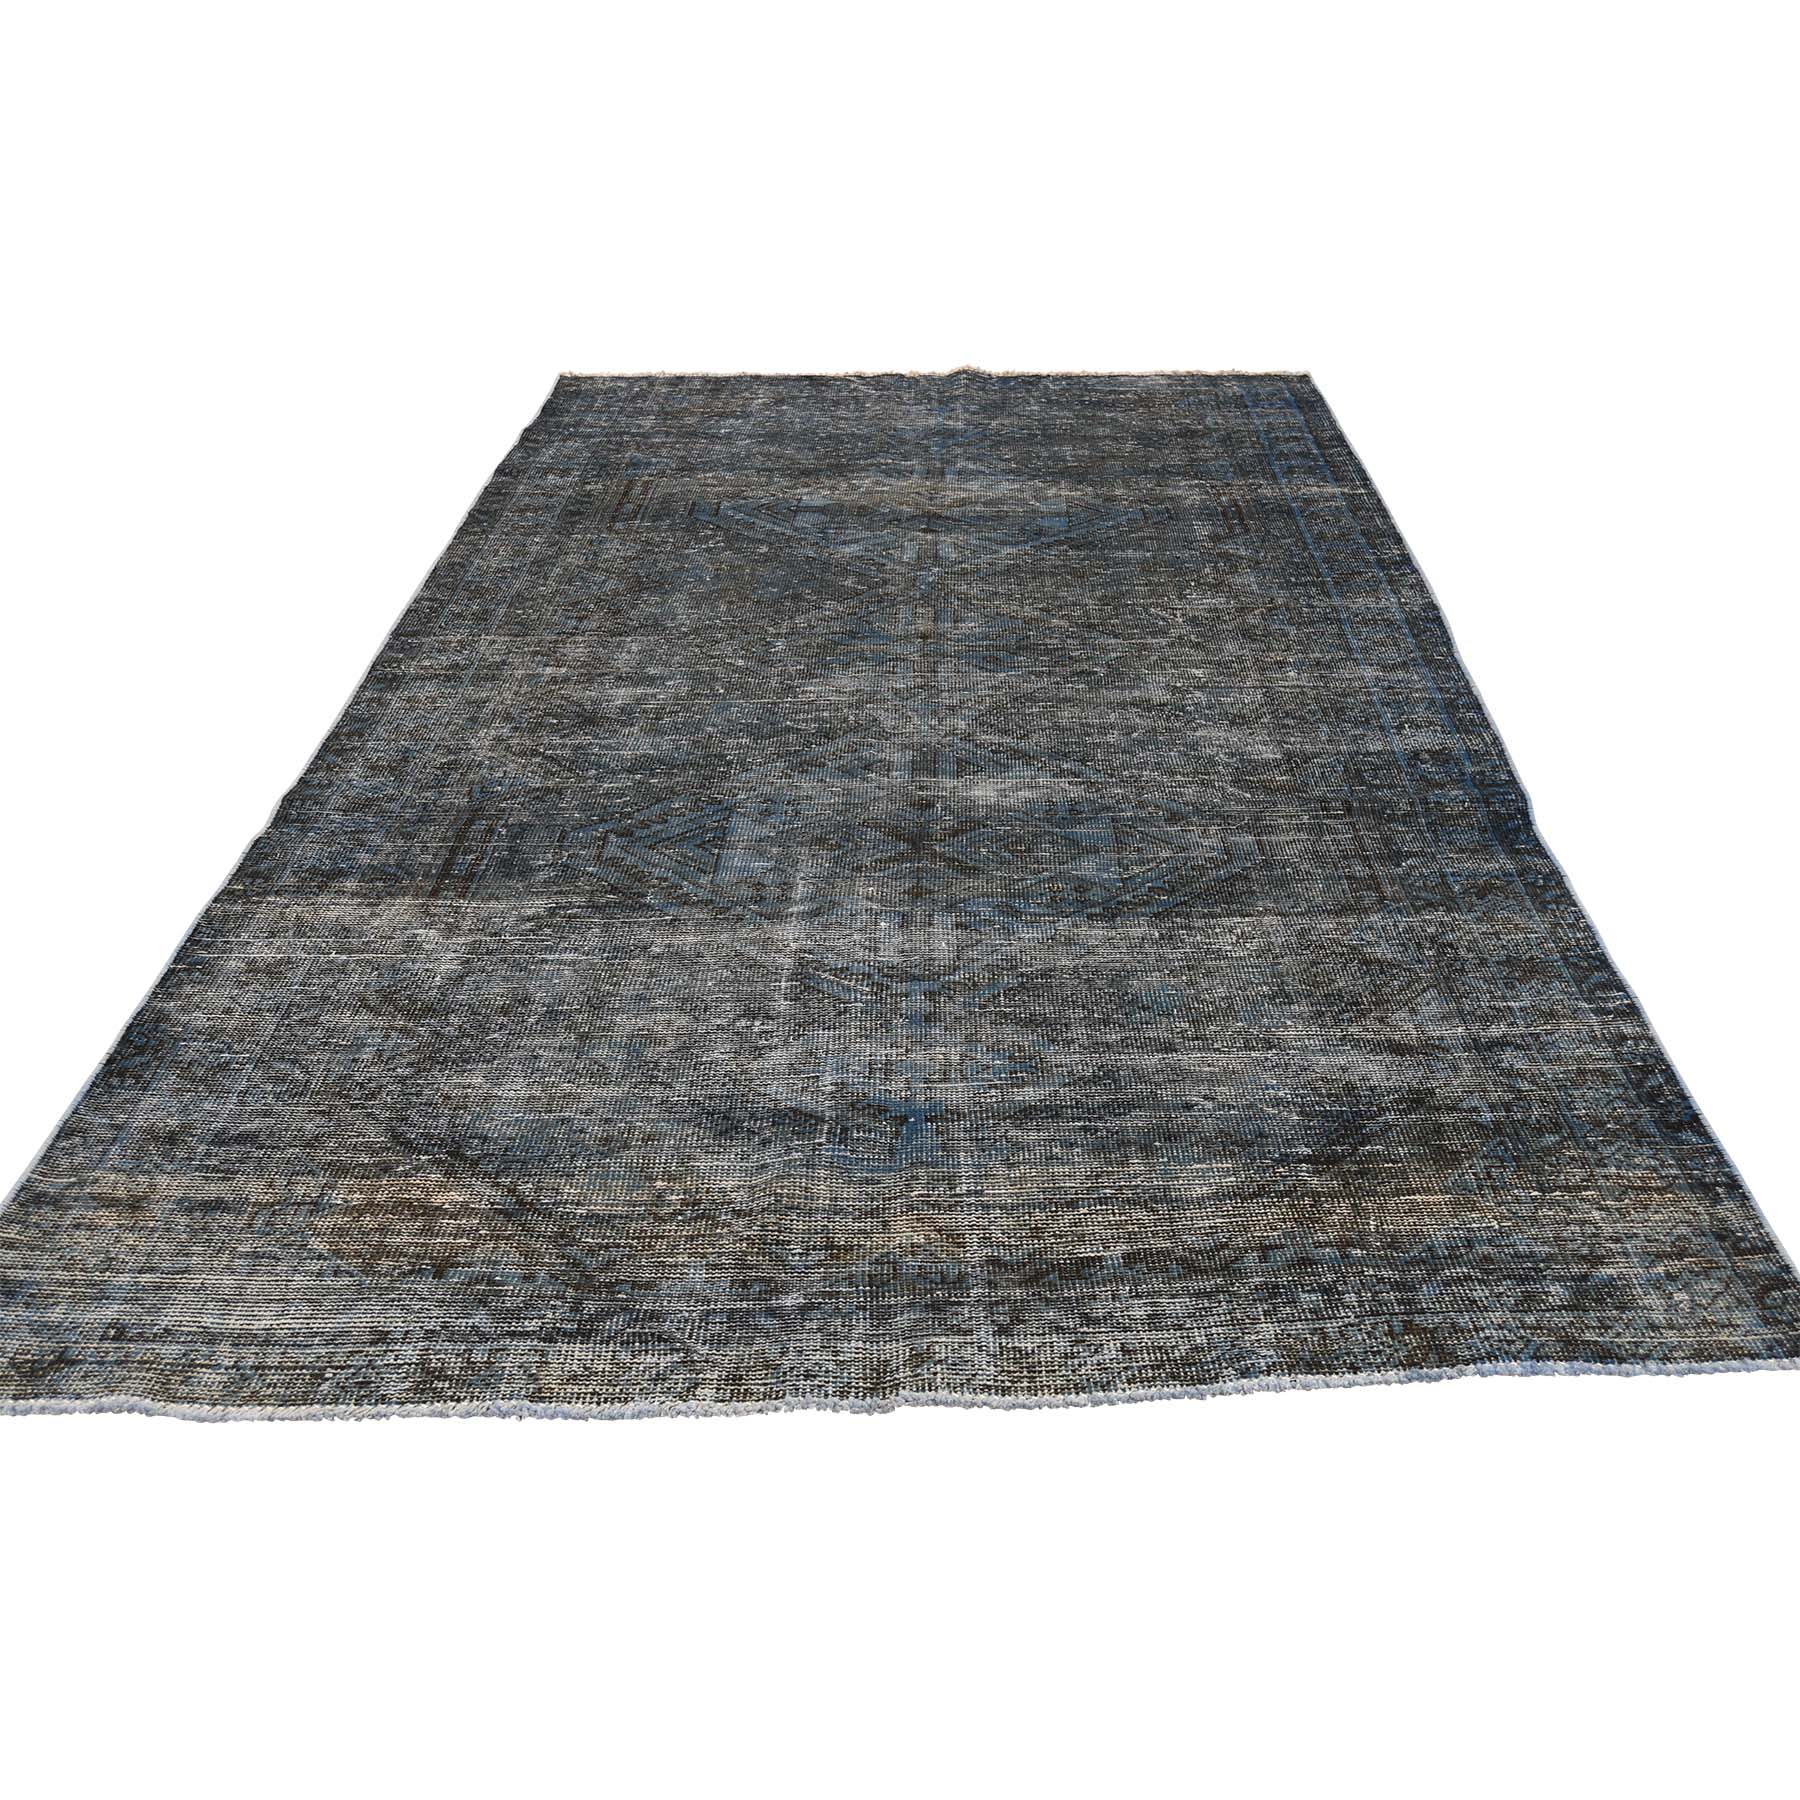 Fetneh Collection And Vintage Overdyed Collection Hand Knotted Blue Rug No: 0177332